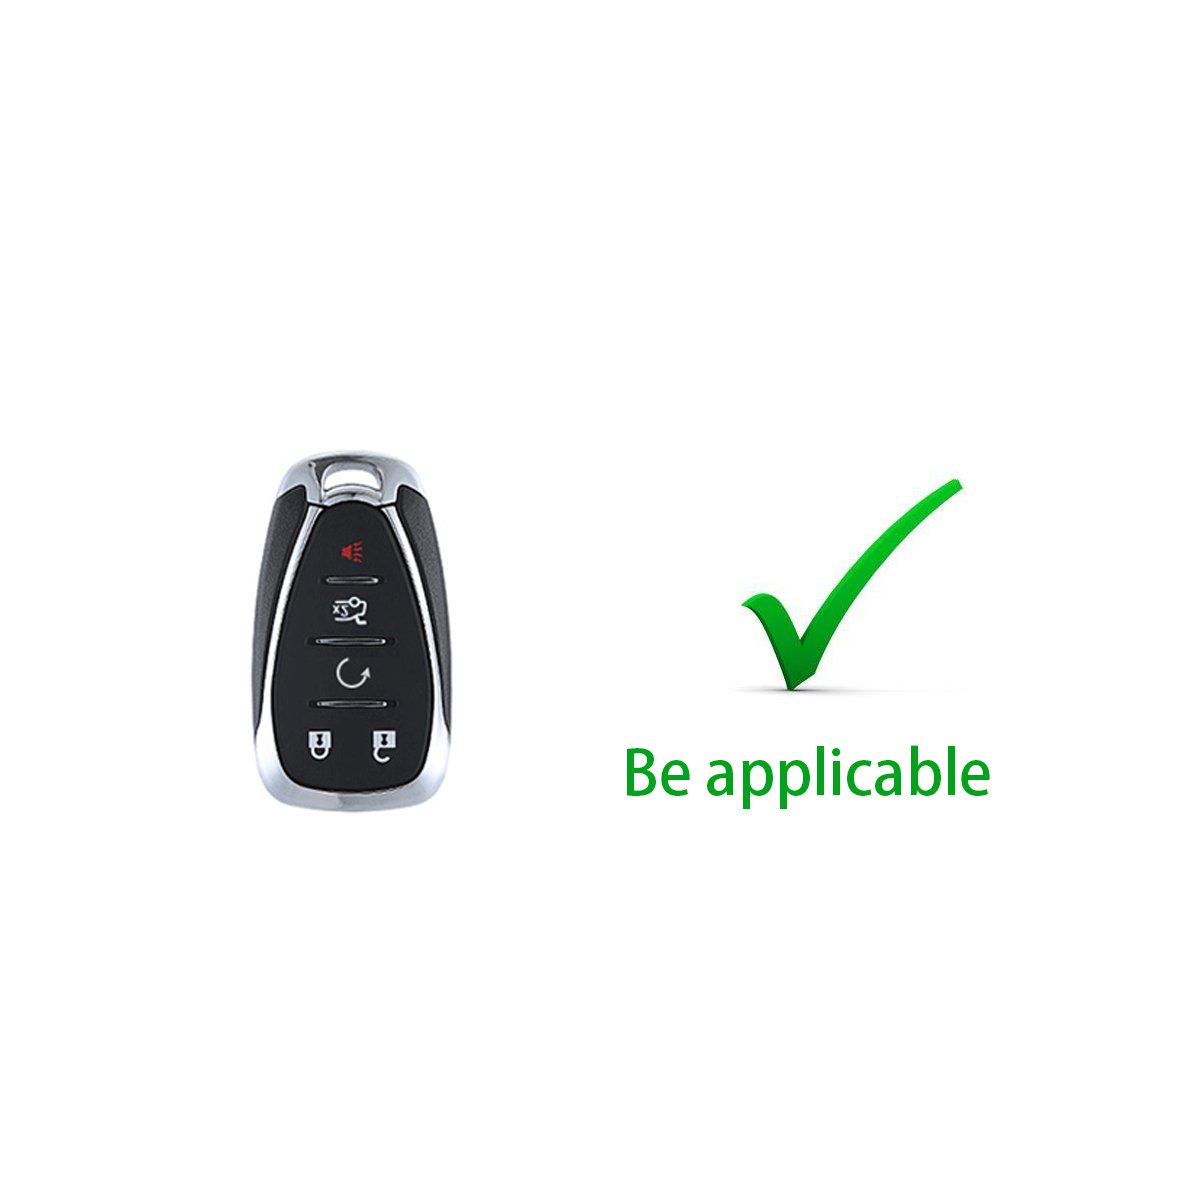 Coolbestda 2Pcs Silicone 6 Buttons Smart Key Remote Fob Cover Case Keyless Jacket Protector for 2014 2015 2016 Honda Odyssey EXL KR5V1X Black Blue 4350450495